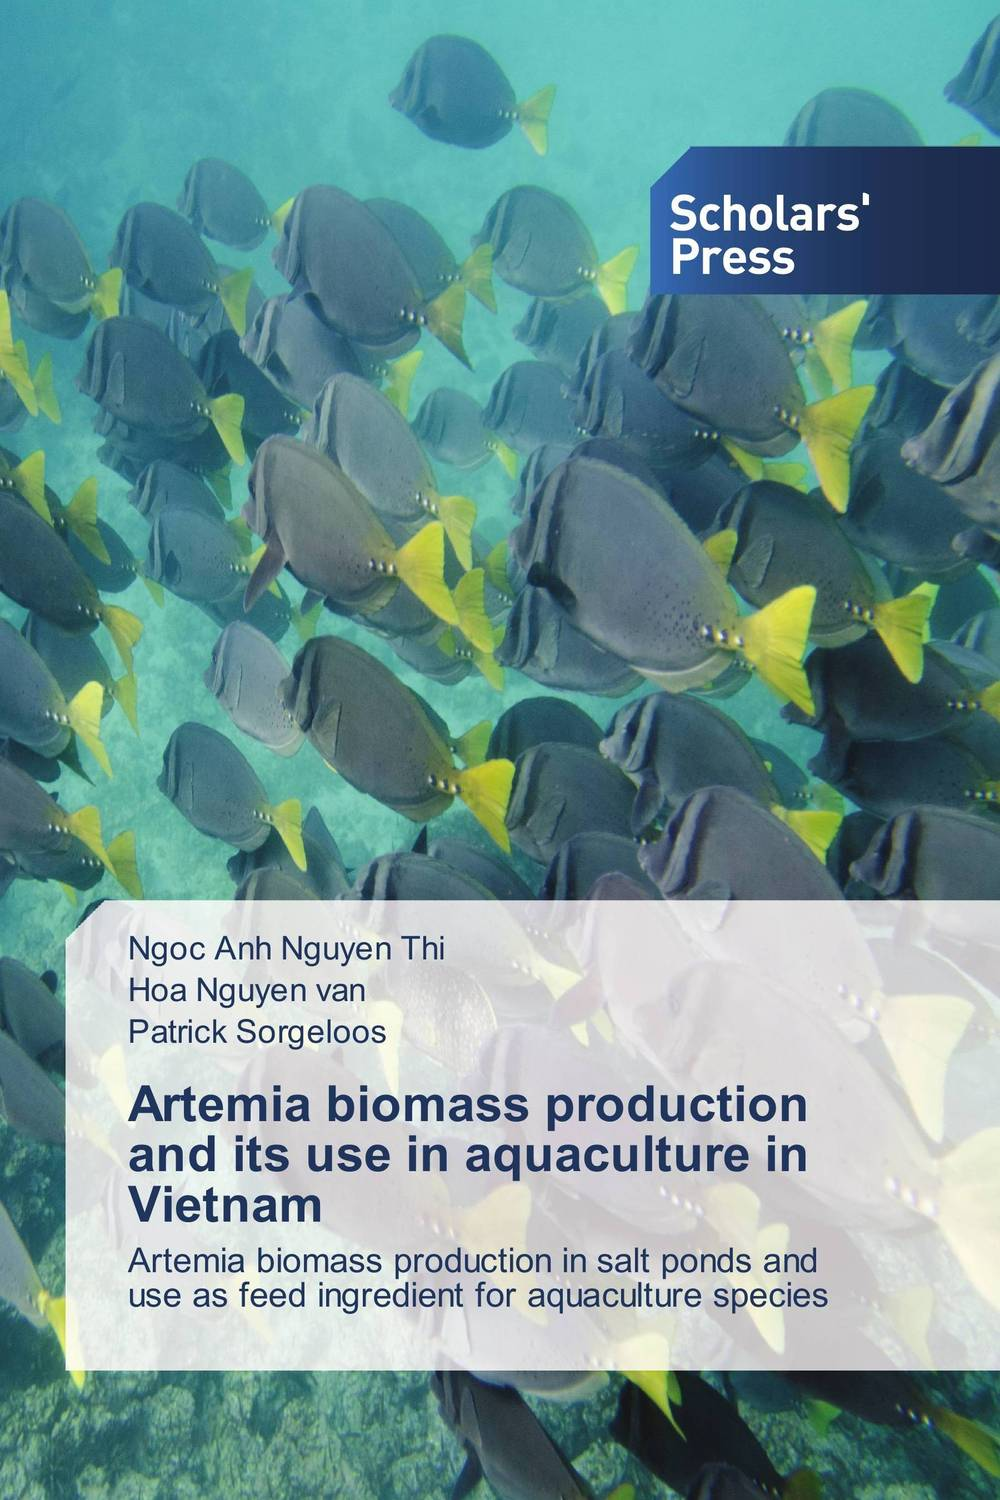 Artemia biomass production and its use in aquaculture in Vietnam adding value to the citrus pulp by enzyme biotechnology production